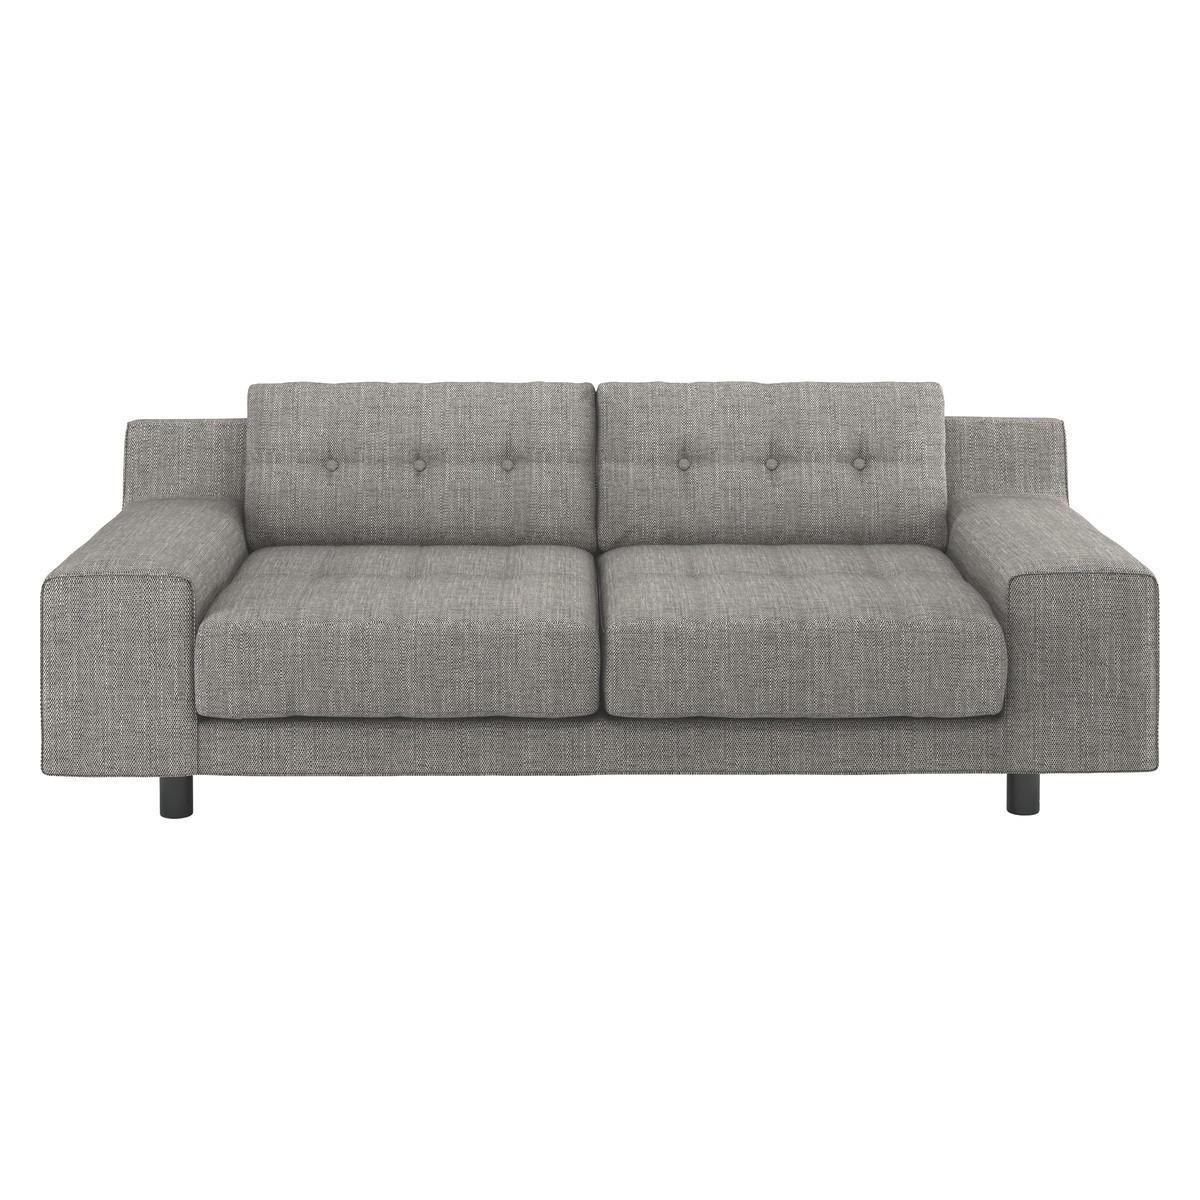 Small Design But Big Style, A Two Seater Sofa – Tcg Within Two Seater Sofas (View 17 of 20)